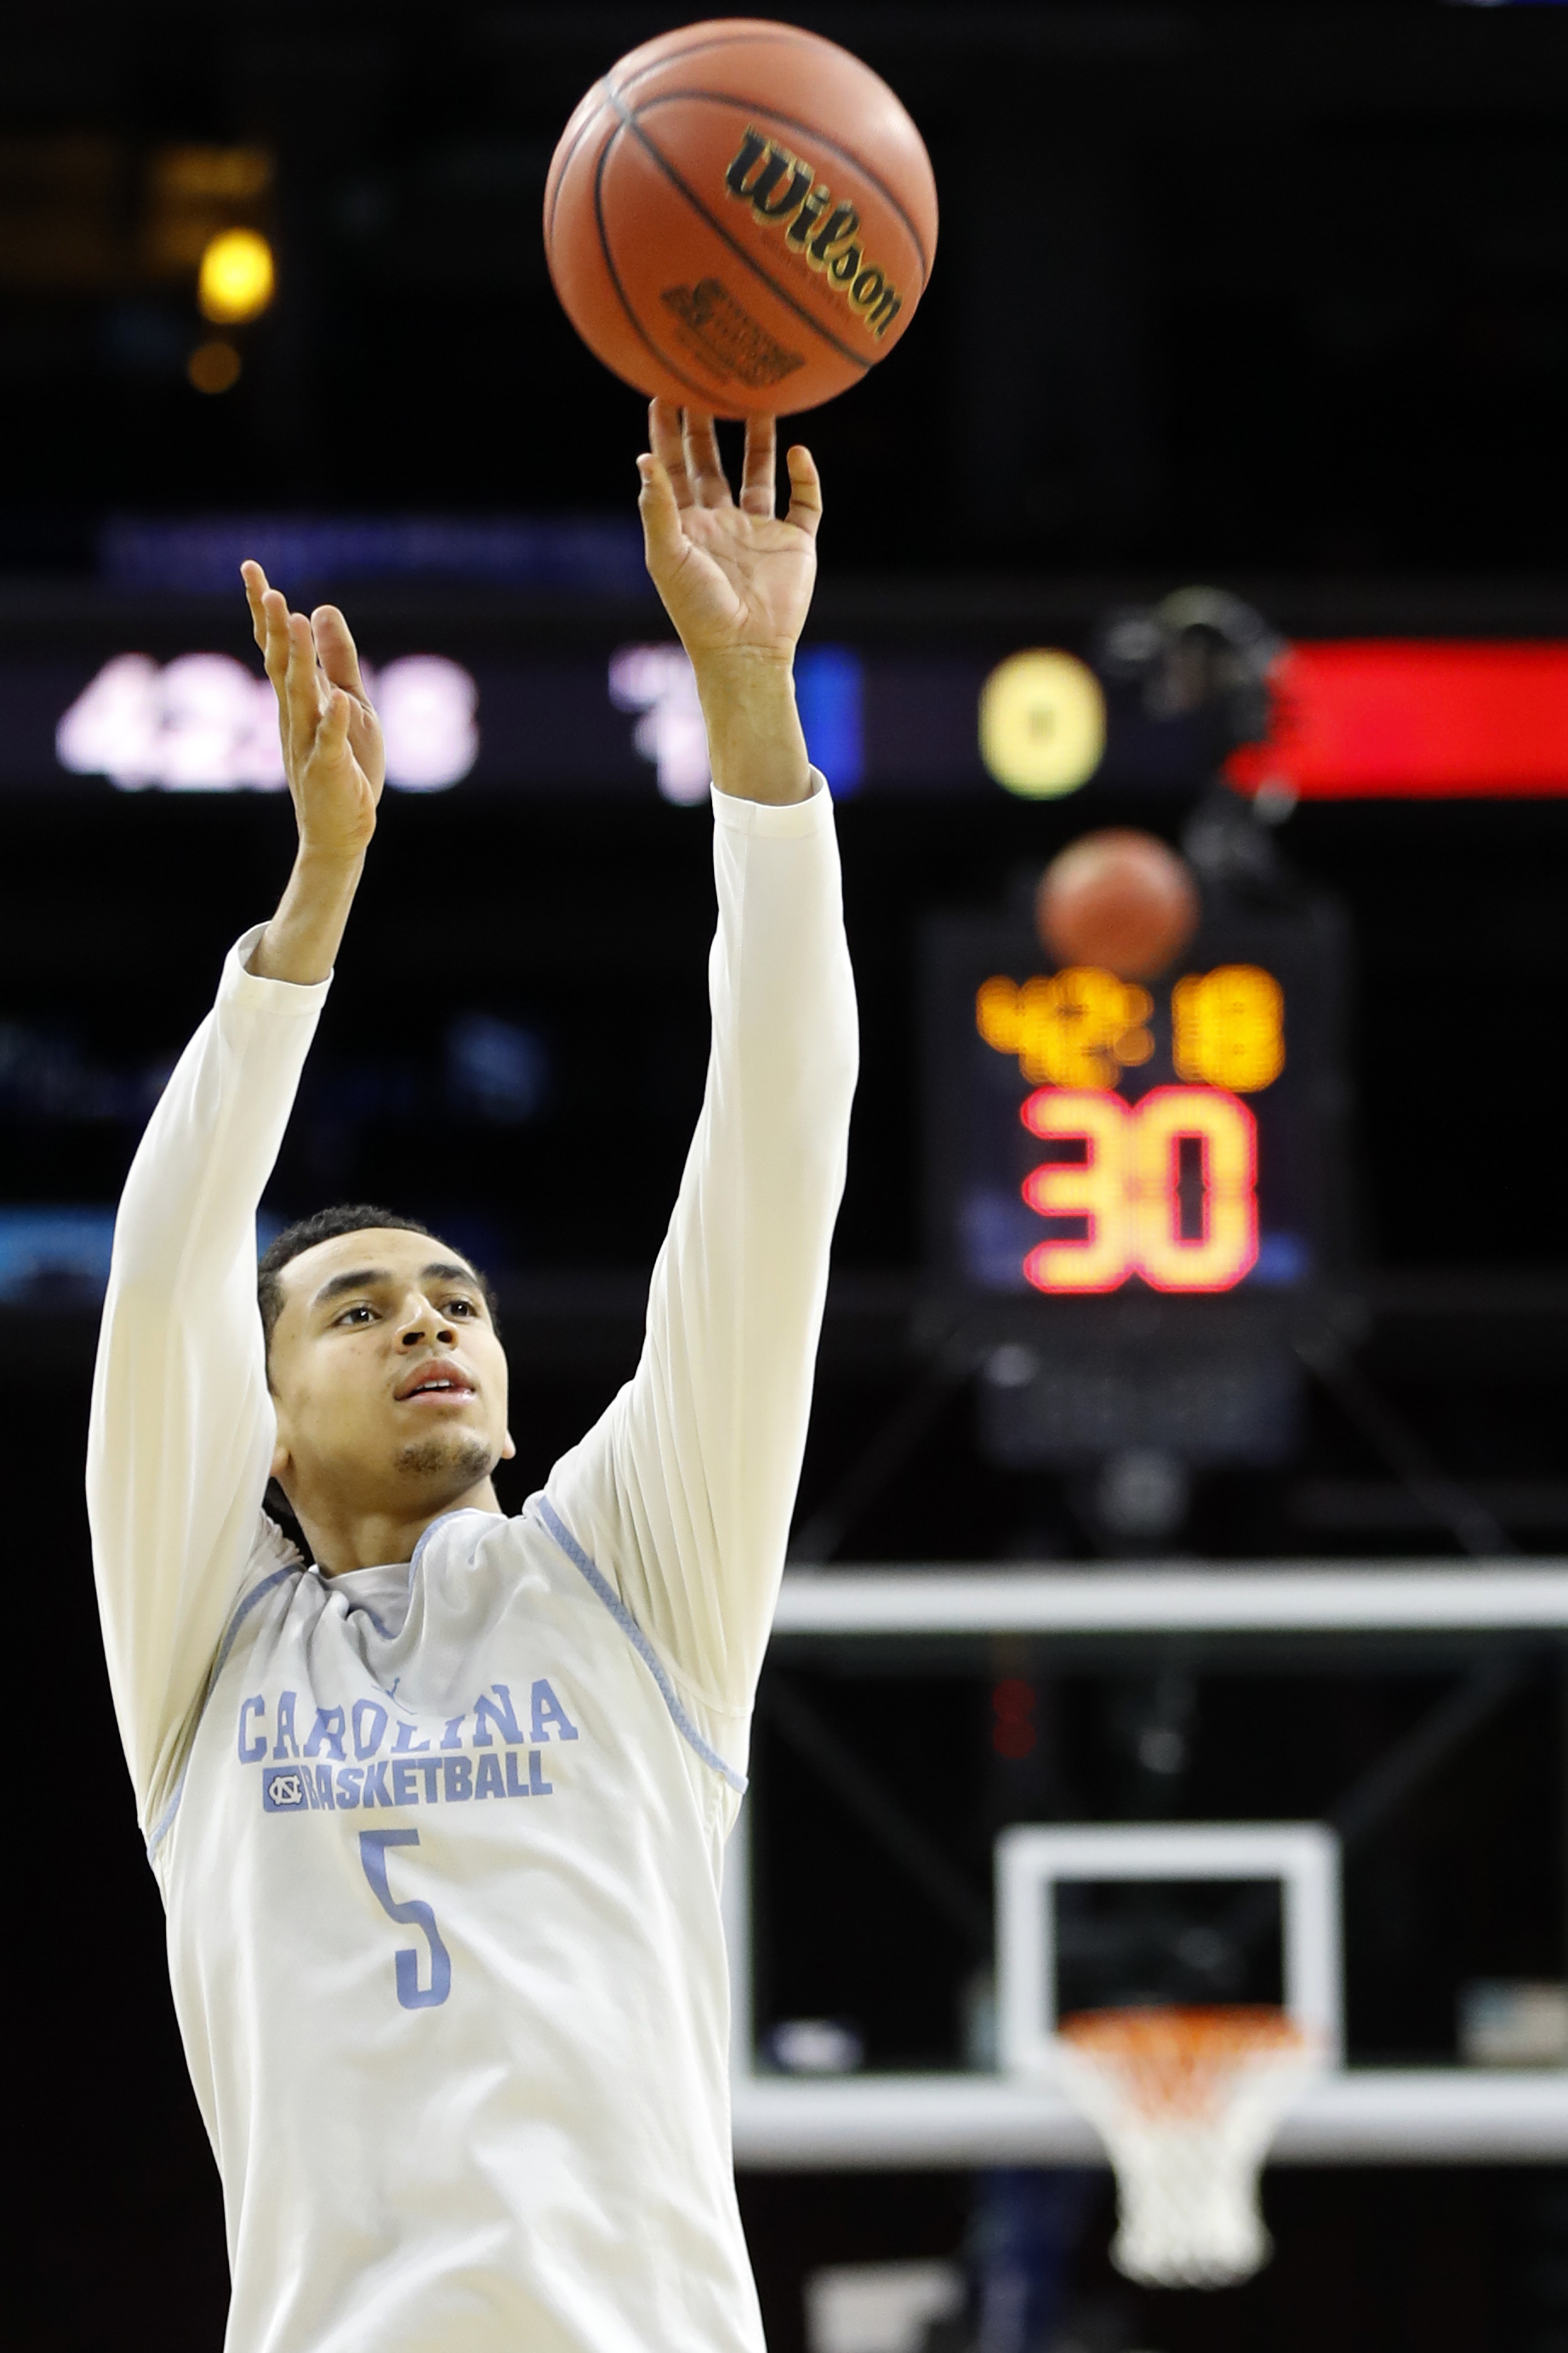 North Carolina's Marcus Paige takes a shot during college basketball practice, Thursday, March 24, 2016, in Philadelphia. North Carolina plays against Indiana in a regional semifinal game in the NCAA Tournament on Friday. (AP Photo/Chris Szagola)